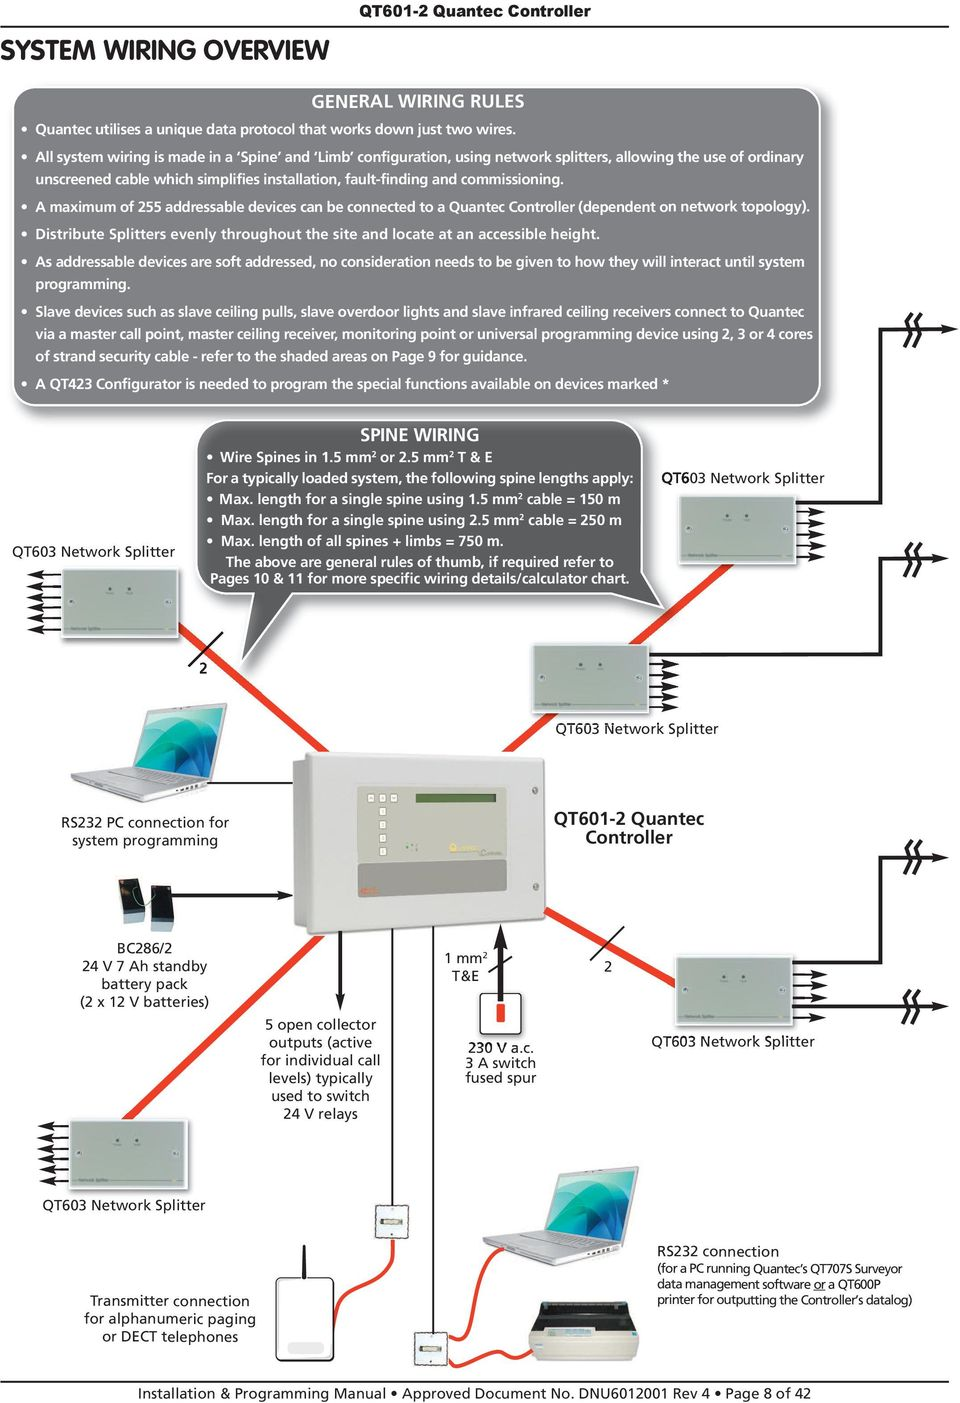 3m D20 Intercom Wiring Diagram Diagram Of 2004 Duramax Diesel Engine ...